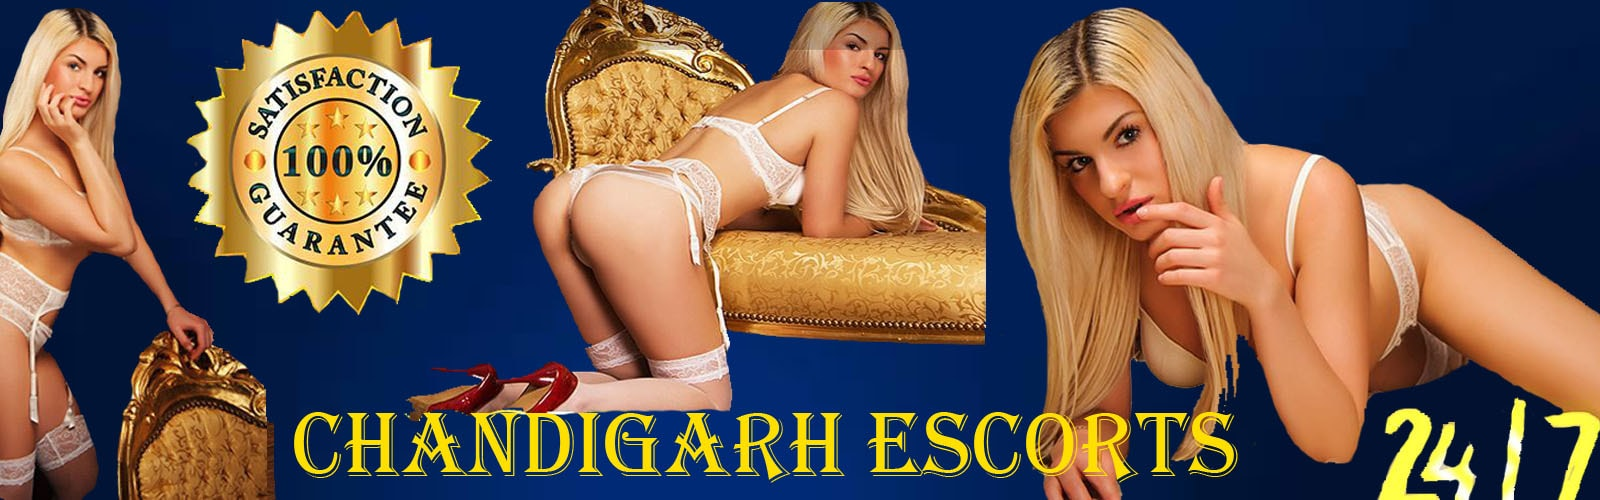 Escort service Chandigarh